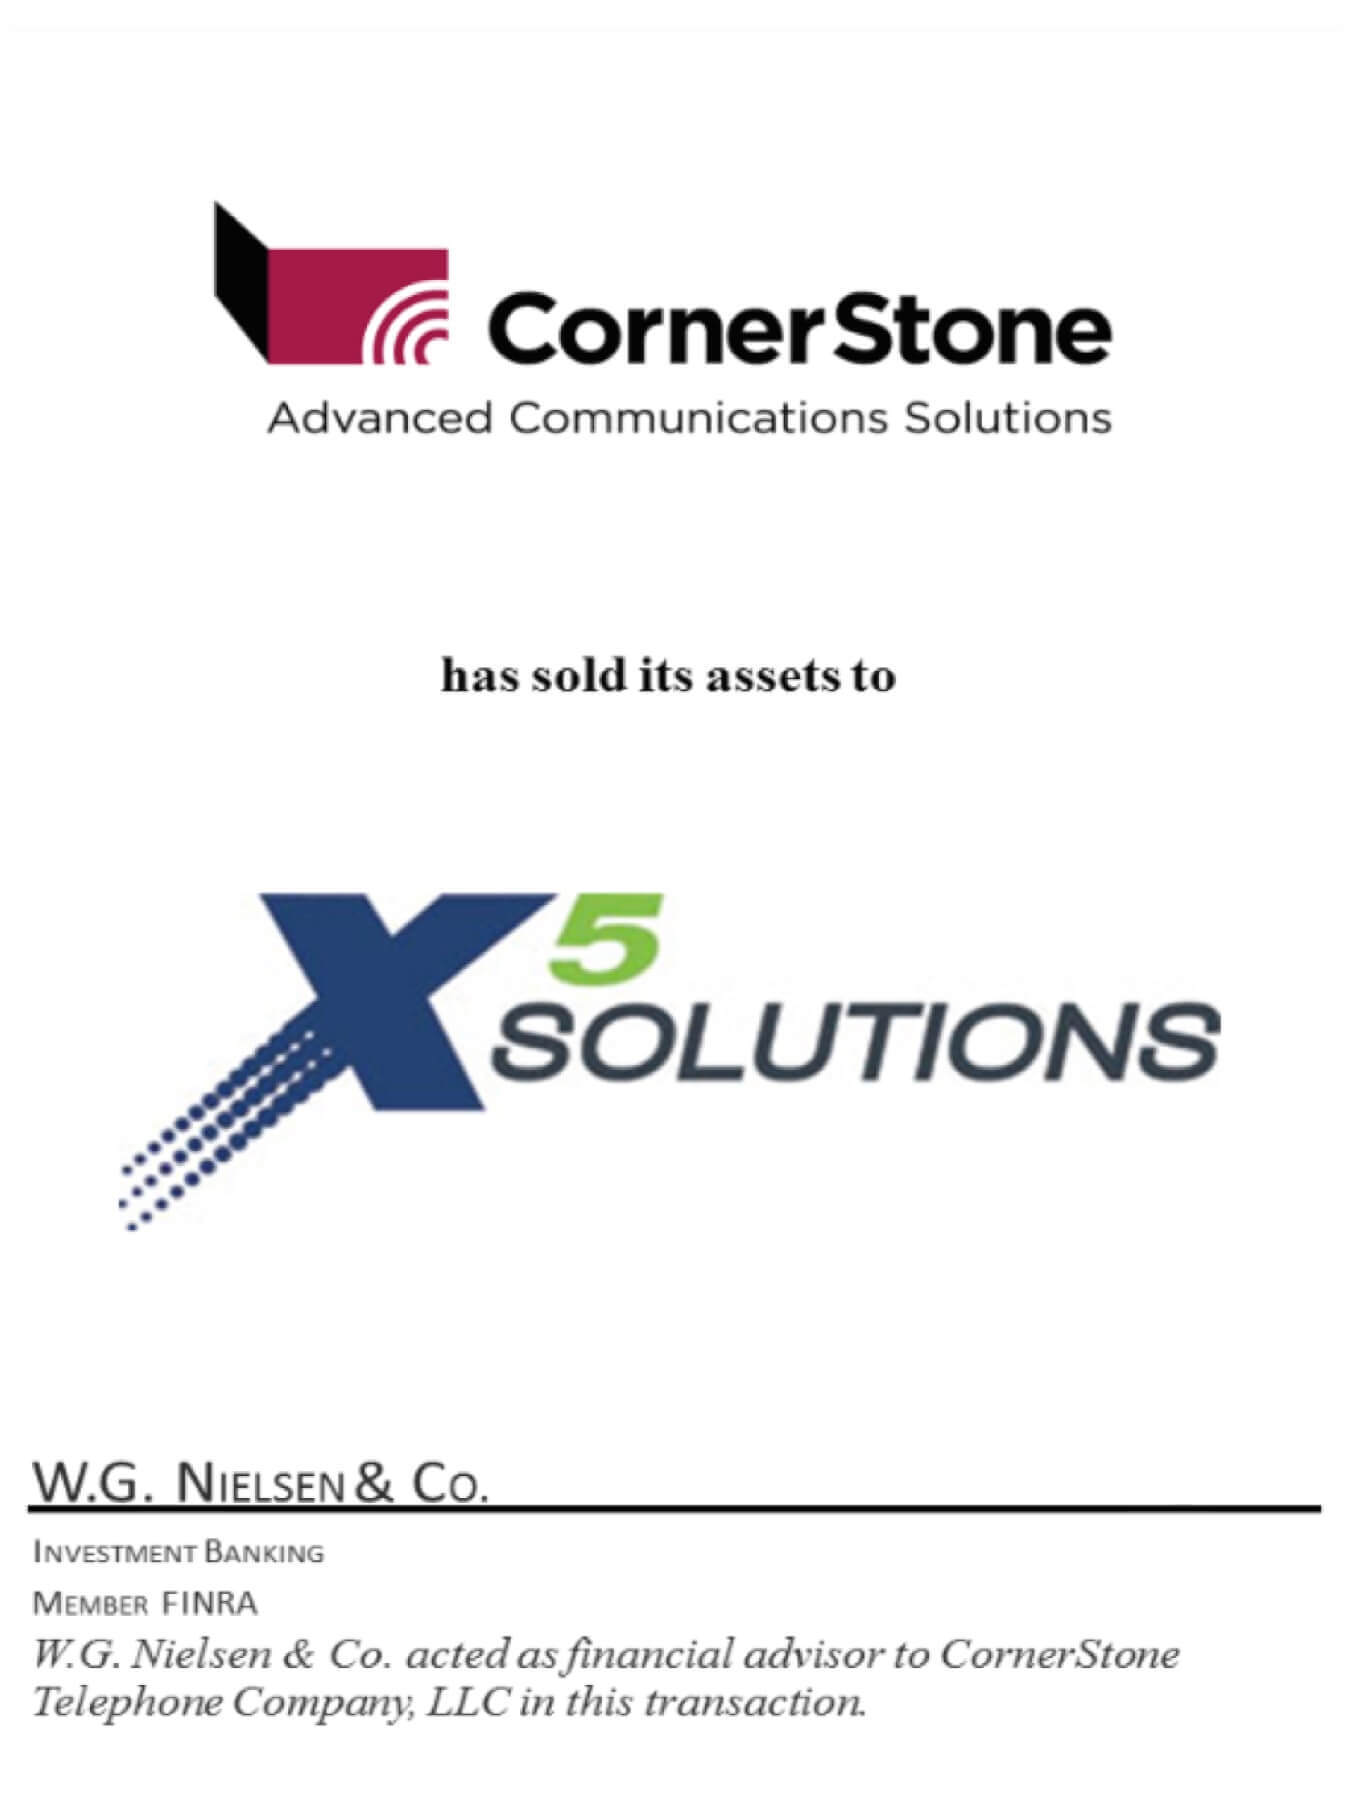 cornerstone advance communication solutions investment banking transaction